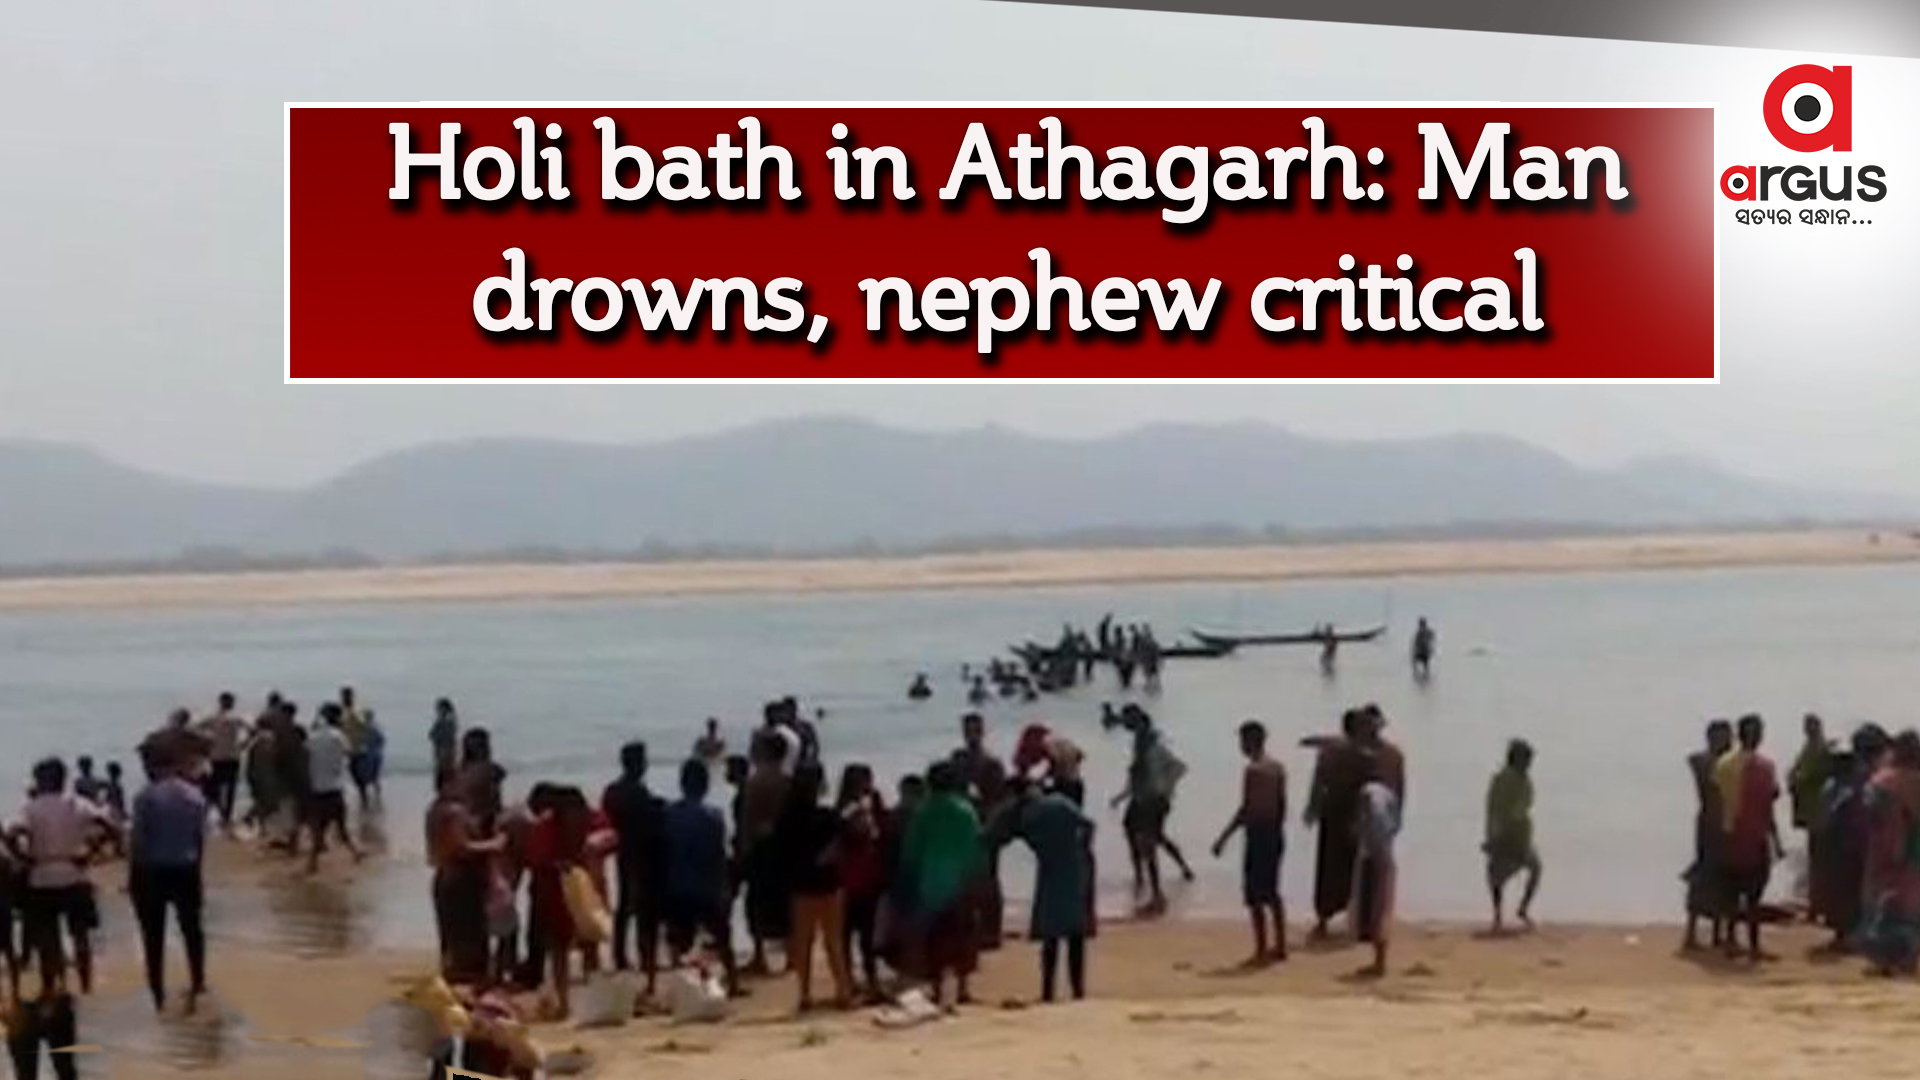 Holi bath in Athagarh: Man drowns, nephew critical